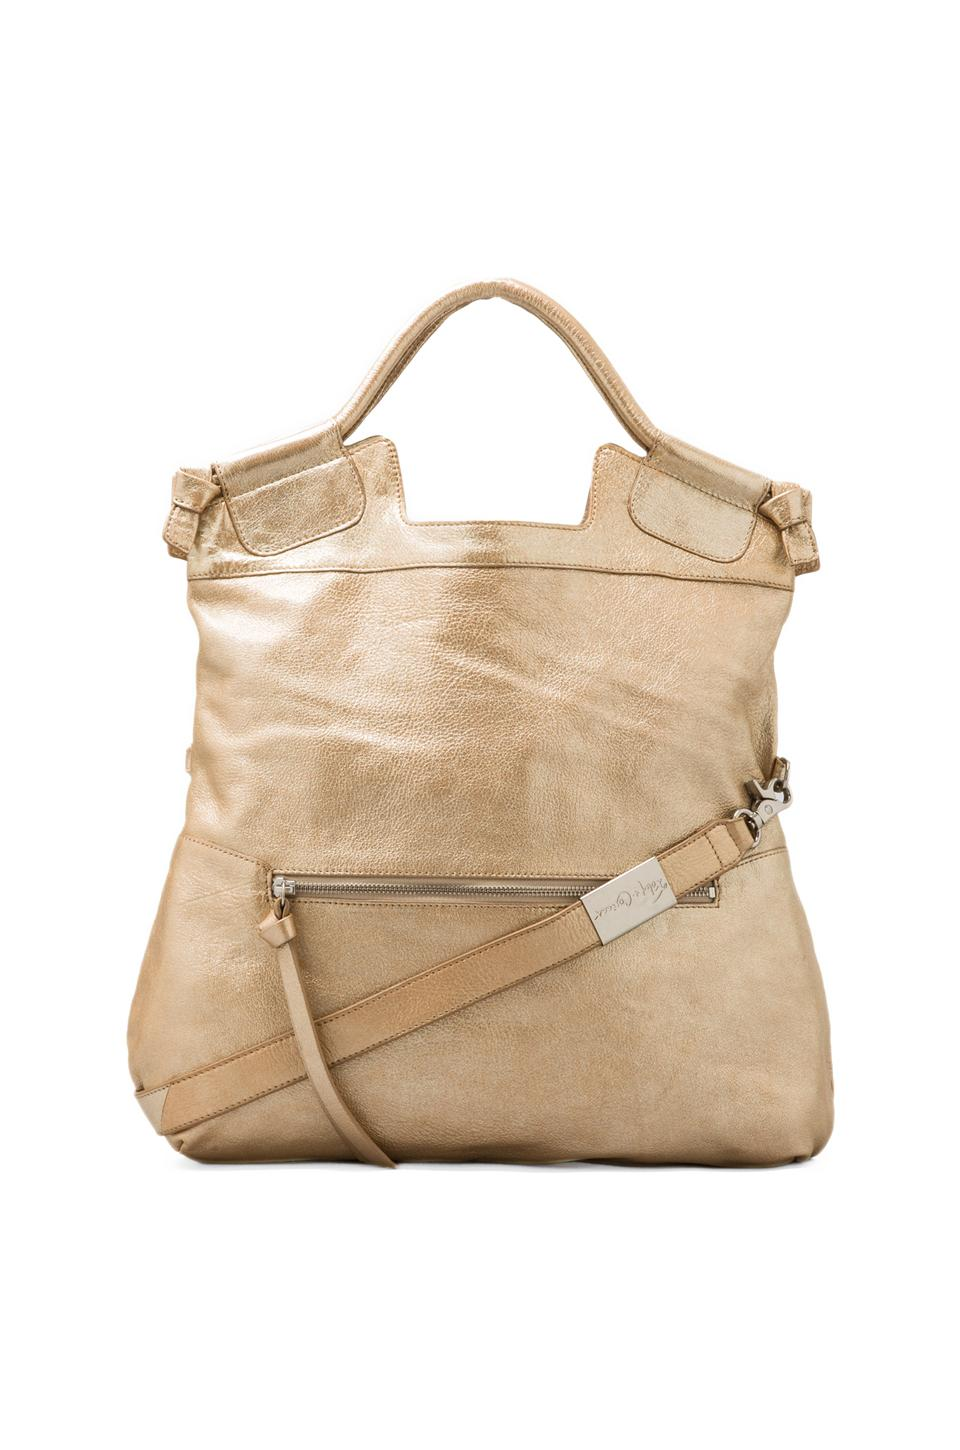 Foley + Corinna Mid City Bag in Galvanize